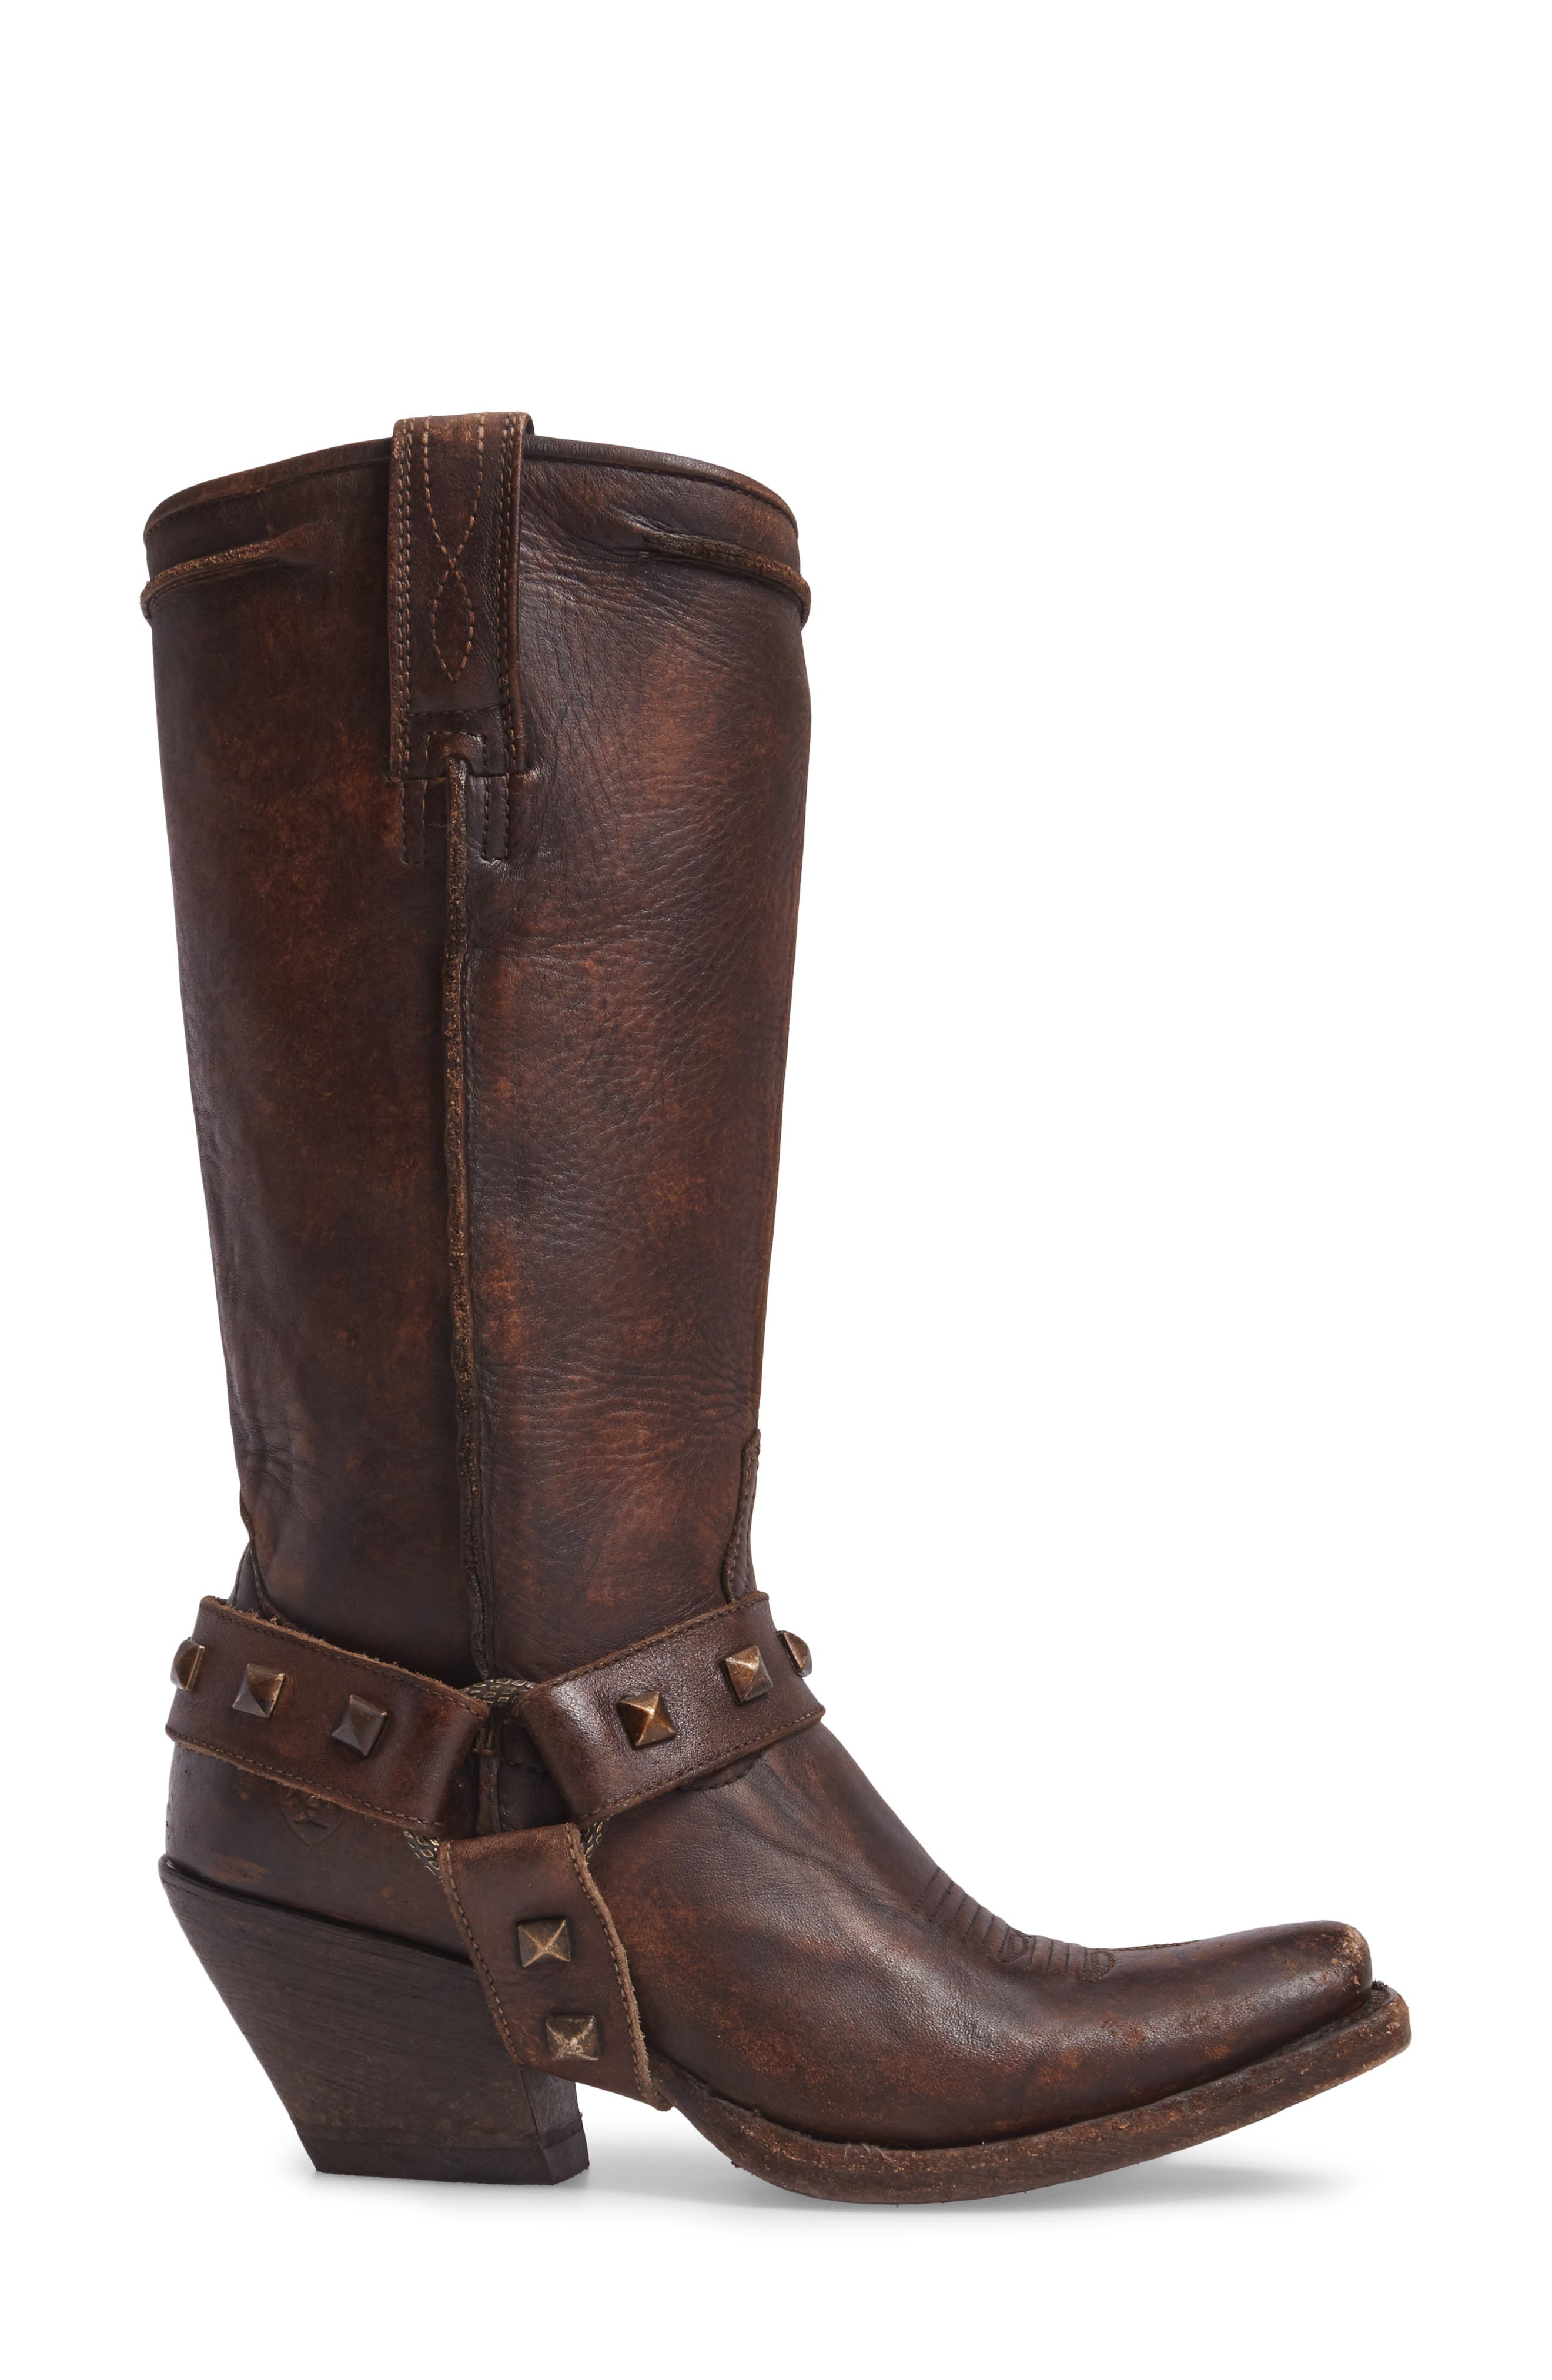 Rowan Western Harness Boot,                             Alternate thumbnail 3, color,                             NATURAL NORWOOD LEATHER